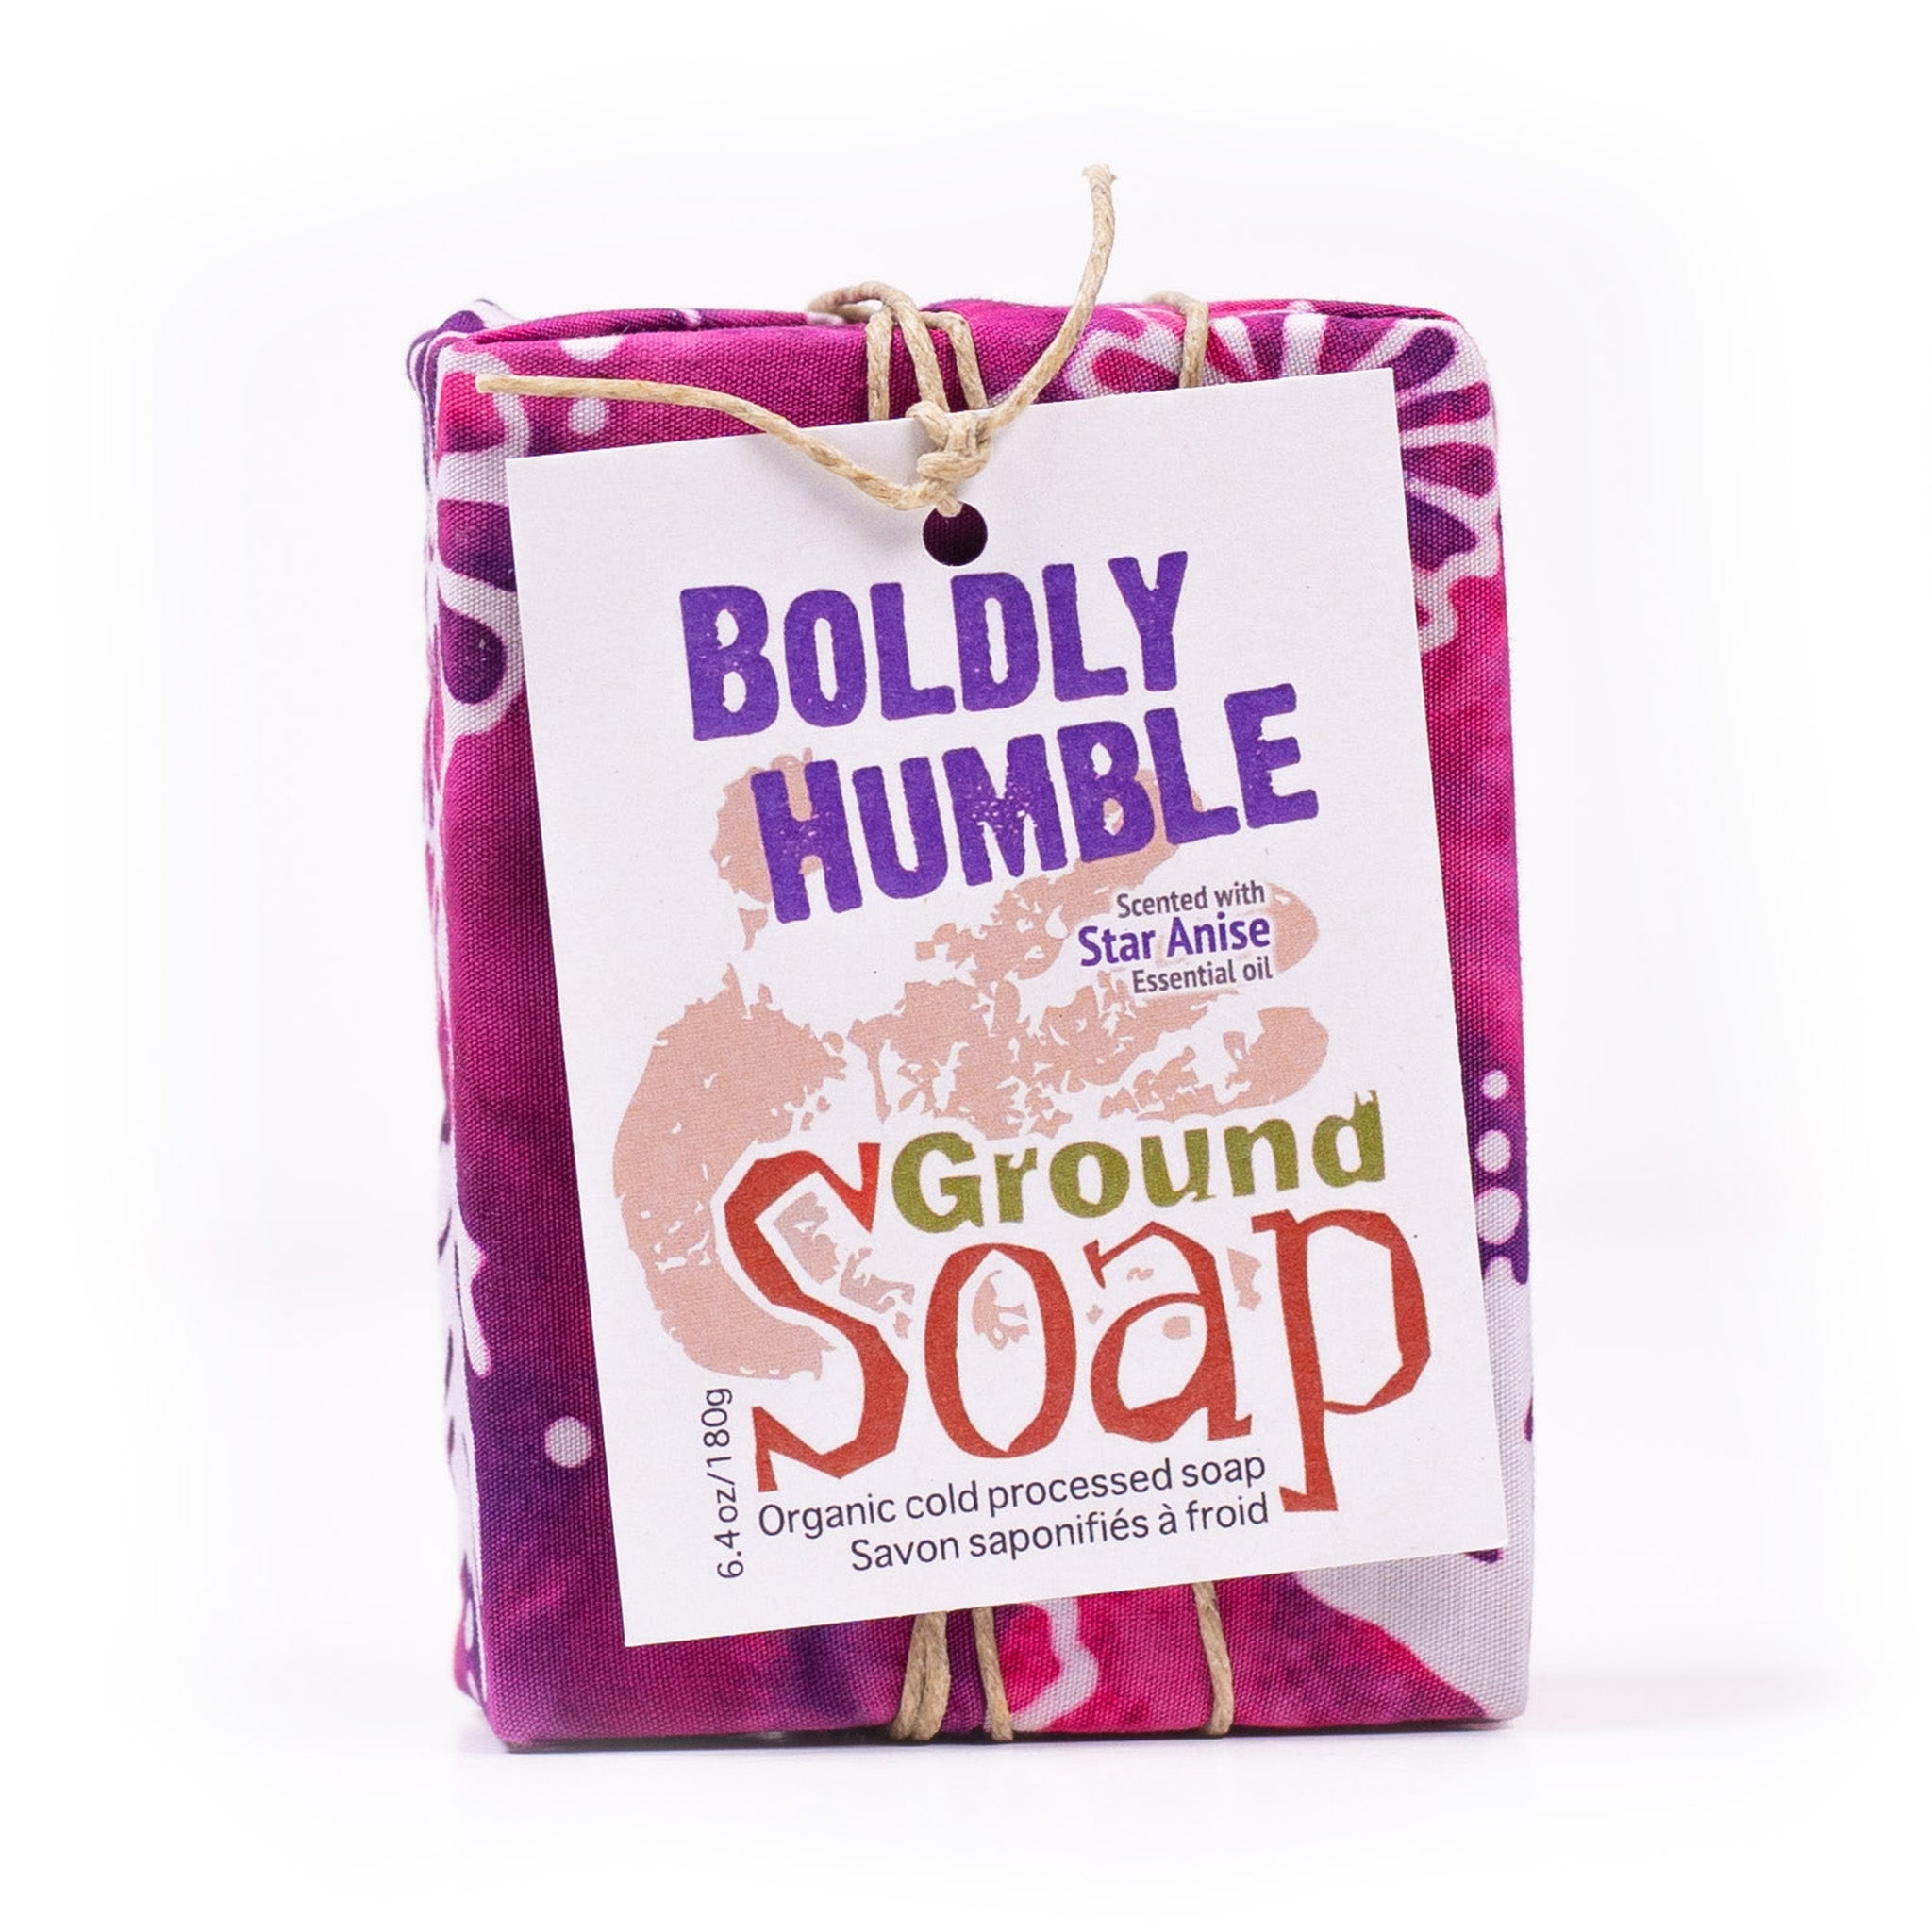 Boldly Humble star anise essential oil organic bar soap from ground Soap.